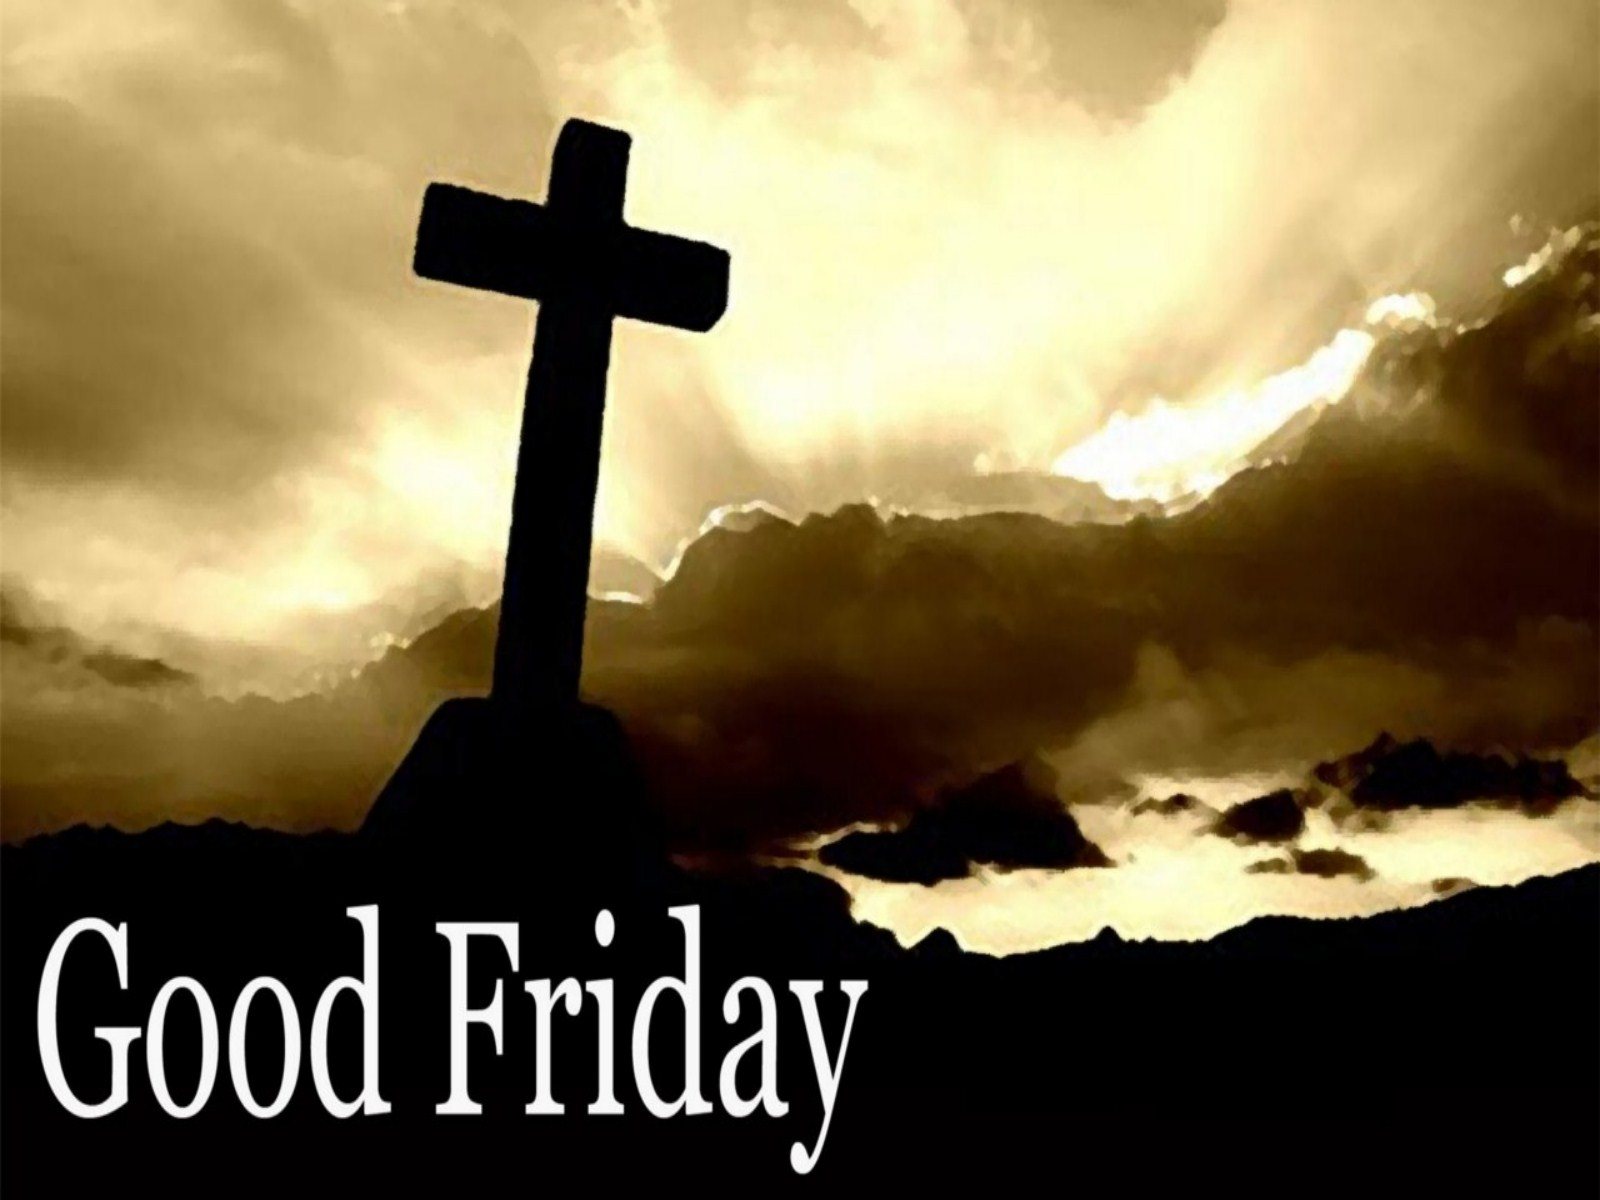 Good Friday Quotes Sayings Wishes Messages Status 2015